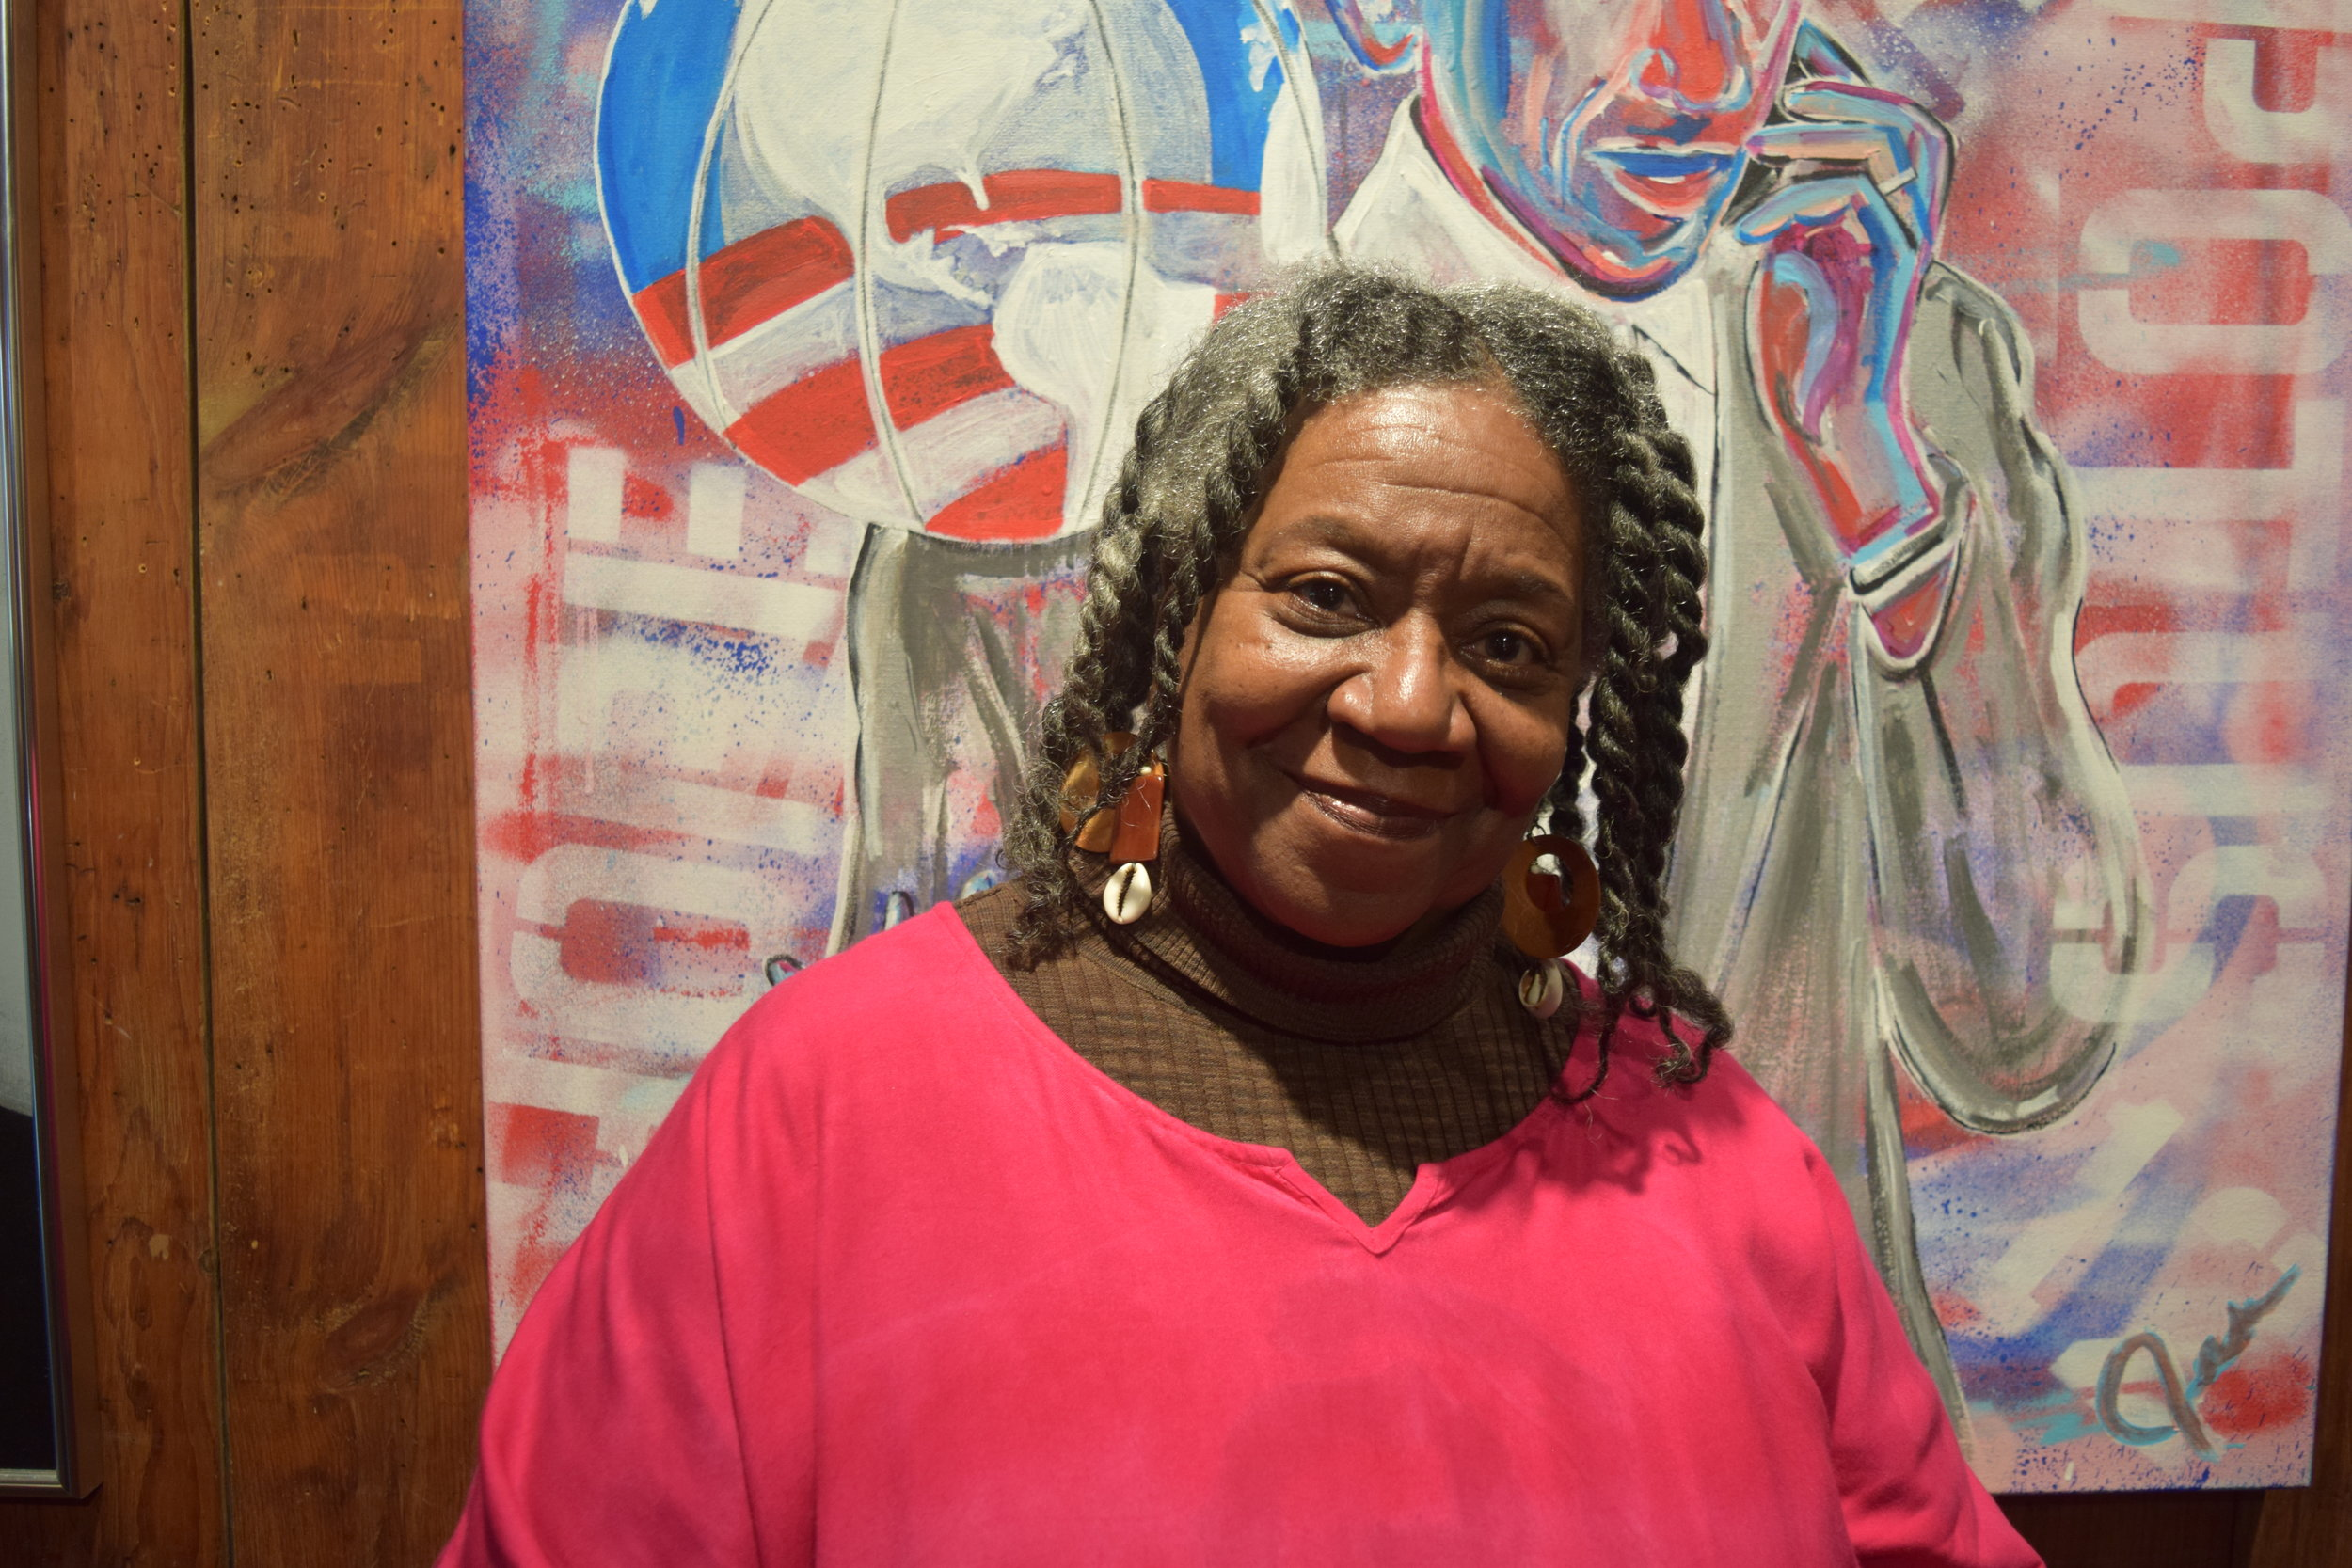 """Maséqua Myers      Executive Director, South Side Community Art Center   """"""""We are the oldest African-American art collective institution in the country. We are a part of the Workers Progress Administration initiative, so in 1940 we became one of the 110 art centers that was assisted in founding and opening. We are the only ones that are still standing in the same location, with the same mission after 76 years. We never closed our doors. We continuously bring art experiences to this community, to the nation, and we actually have international reference and acknowledgment as well. We are carrying on the legacy of using our art to educate and to bring people together and also use it as an affirmation of the African-American artist in particular. One of the reasons why the South Side Community Art Center exists is because of racism. It's because of in 1940, there were no galleries that would hang African-American art. There was one guy named Peter Pollack who had a gallery downtown that hung art for arts sake in term of its beauty and prominence. With him involved in the South Side Community Arts Center, we were able to negotiate and be a part of the Workers Progress Administration… We're more than just an art gallery. We're a multidisciplinary school. Not only do you come to see exhibitions of art, you get chances to take classes in writing, acting, and poetry. We also have programs in the evening where we have open mic and spoken word events. We're also a community center. We're here for the community, which means we support whatever the community wants to speak on. We're right there for social injustice situations, and I think that is what has kept us alive because we've kept the pulse of the community at heart. So whenever there's something to talk through, any kind of plans of action for the better, it happens through here. We've gone to the jails, we've gone to the schools to bring art. We know that art can change a person's life for the better, and it can also br"""